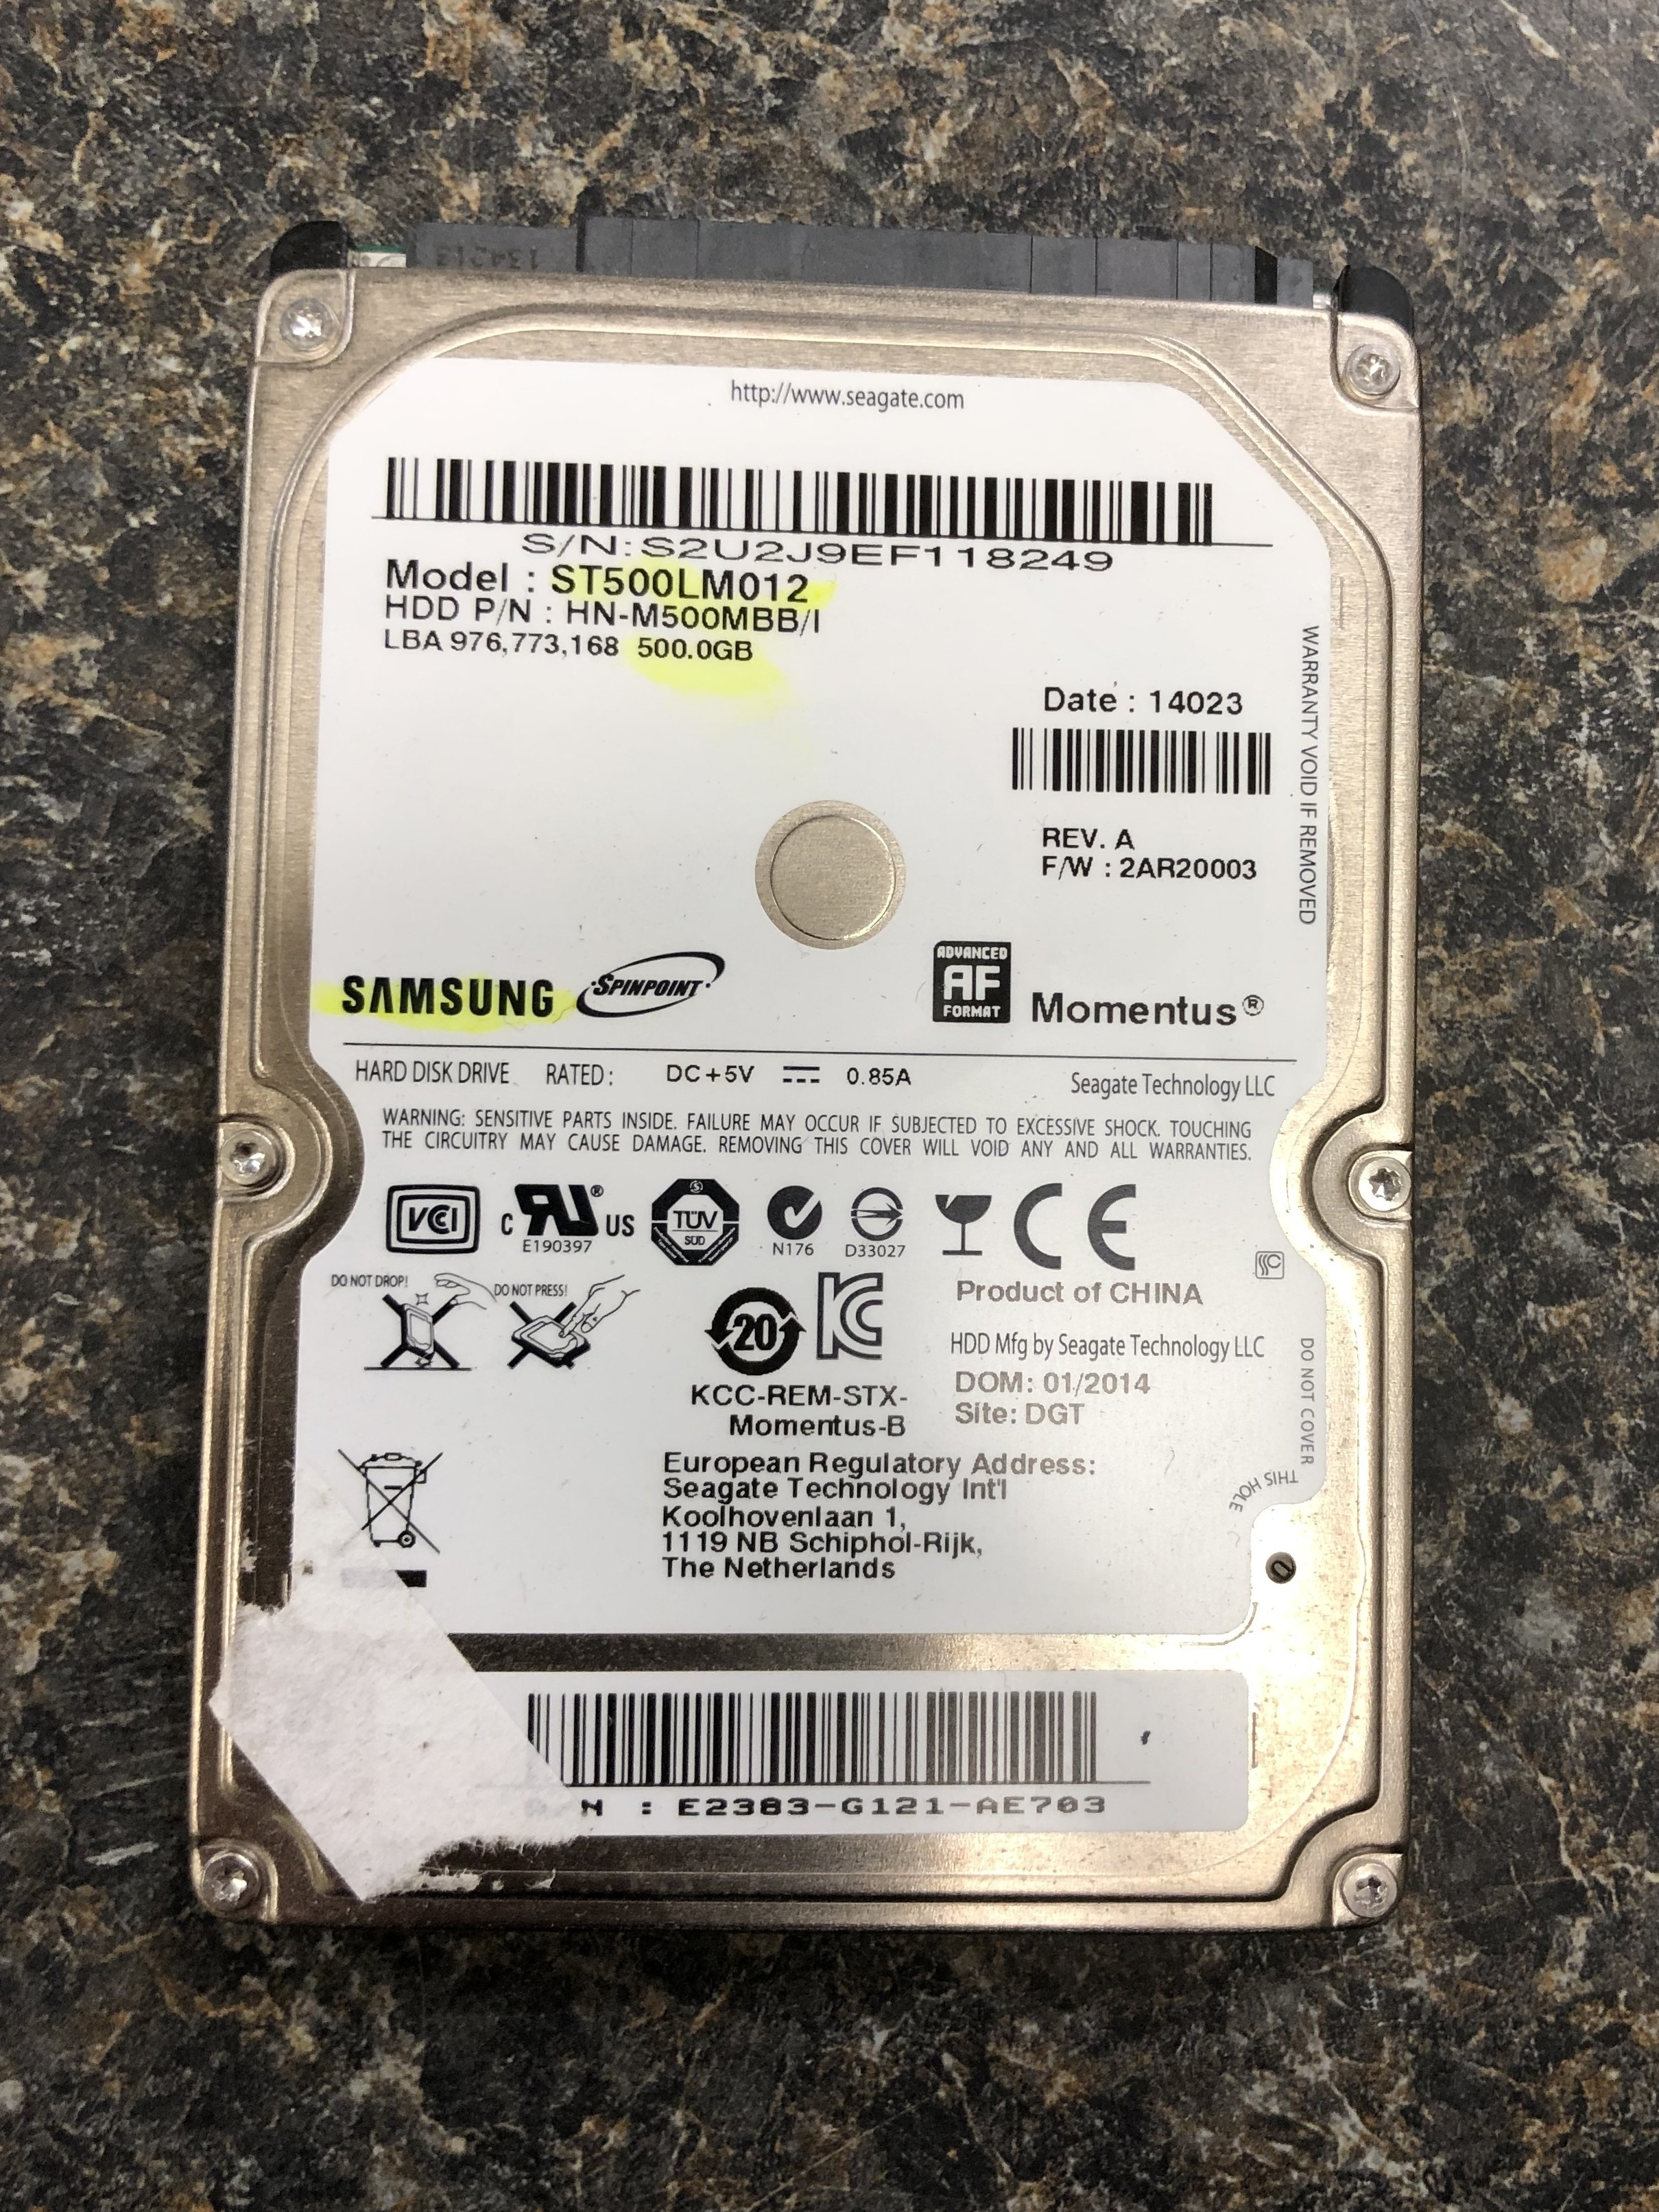 SAMSUNG Spinpoint 500GB HARD DRIVE BARE DRIVE